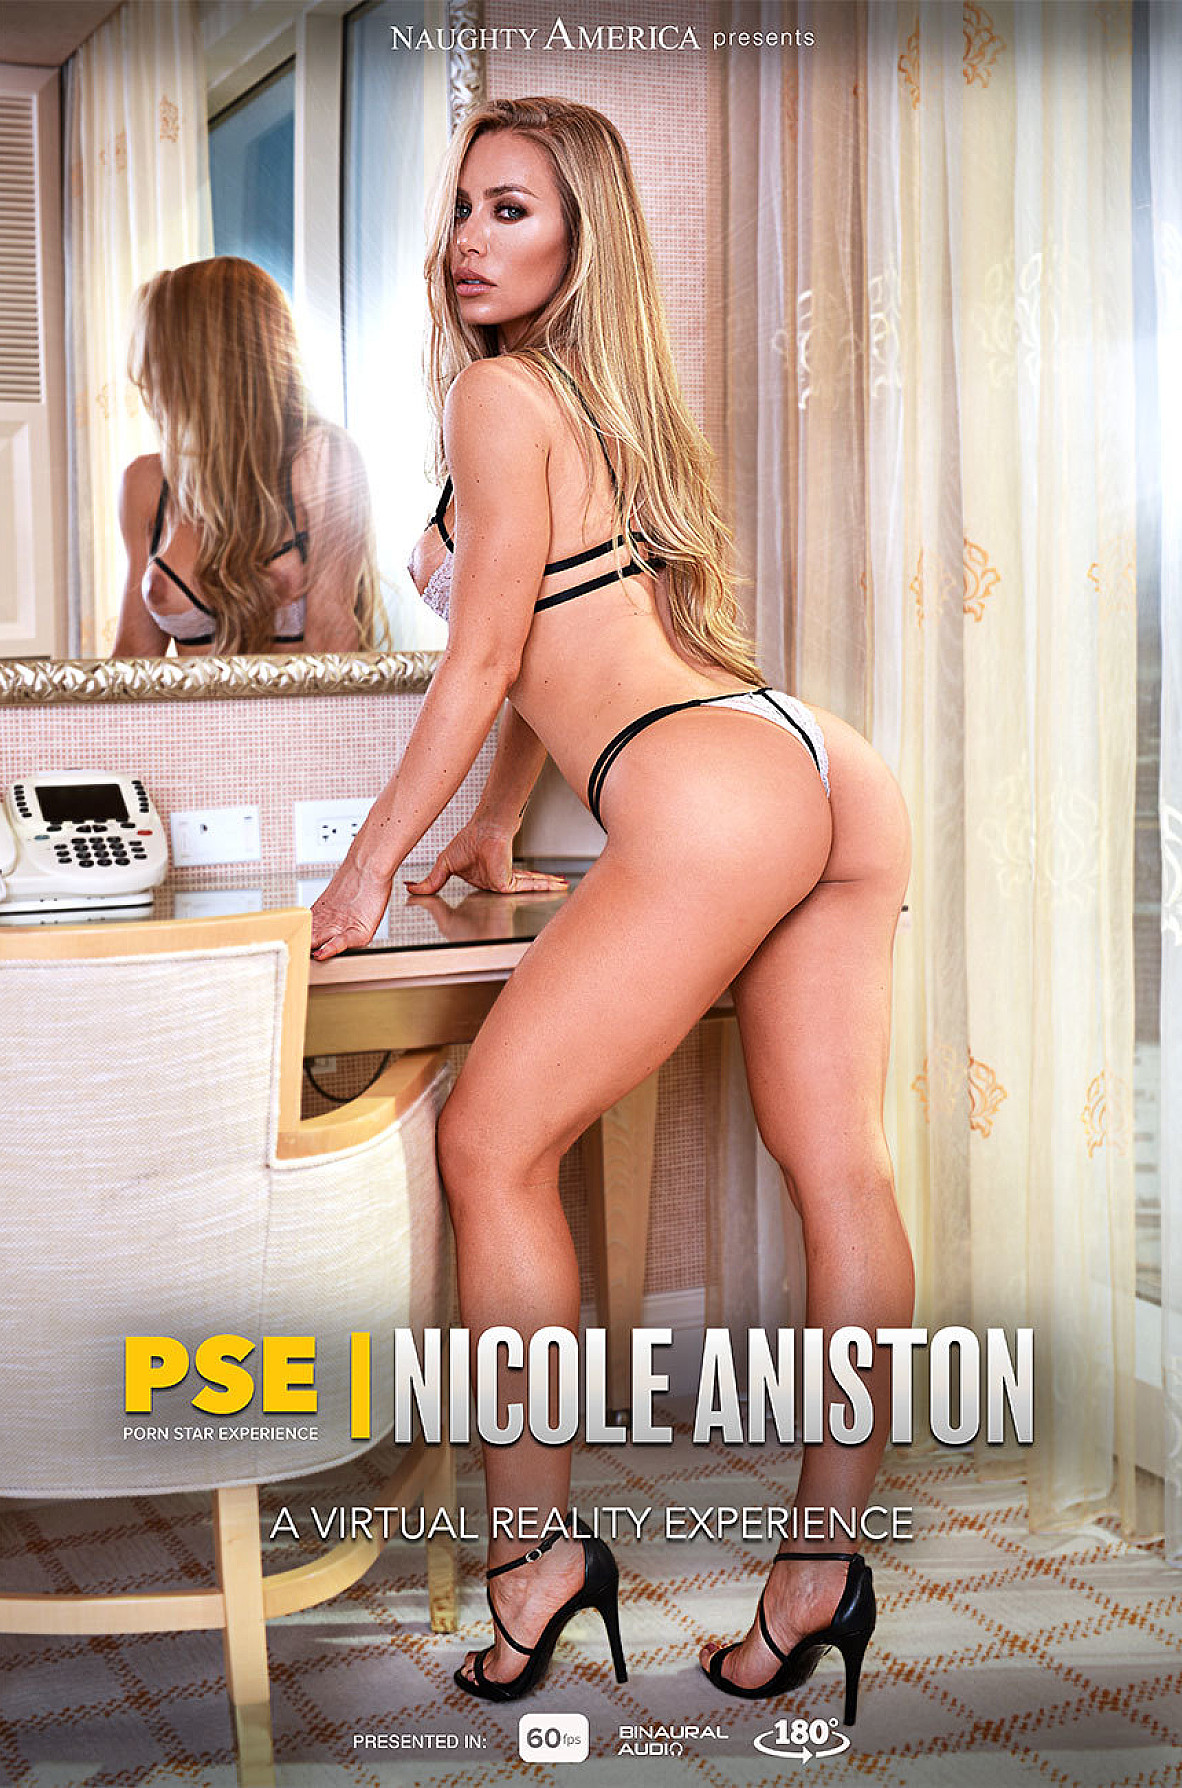 Watch Nicole Aniston and Charles Dera VR video in Naughty America